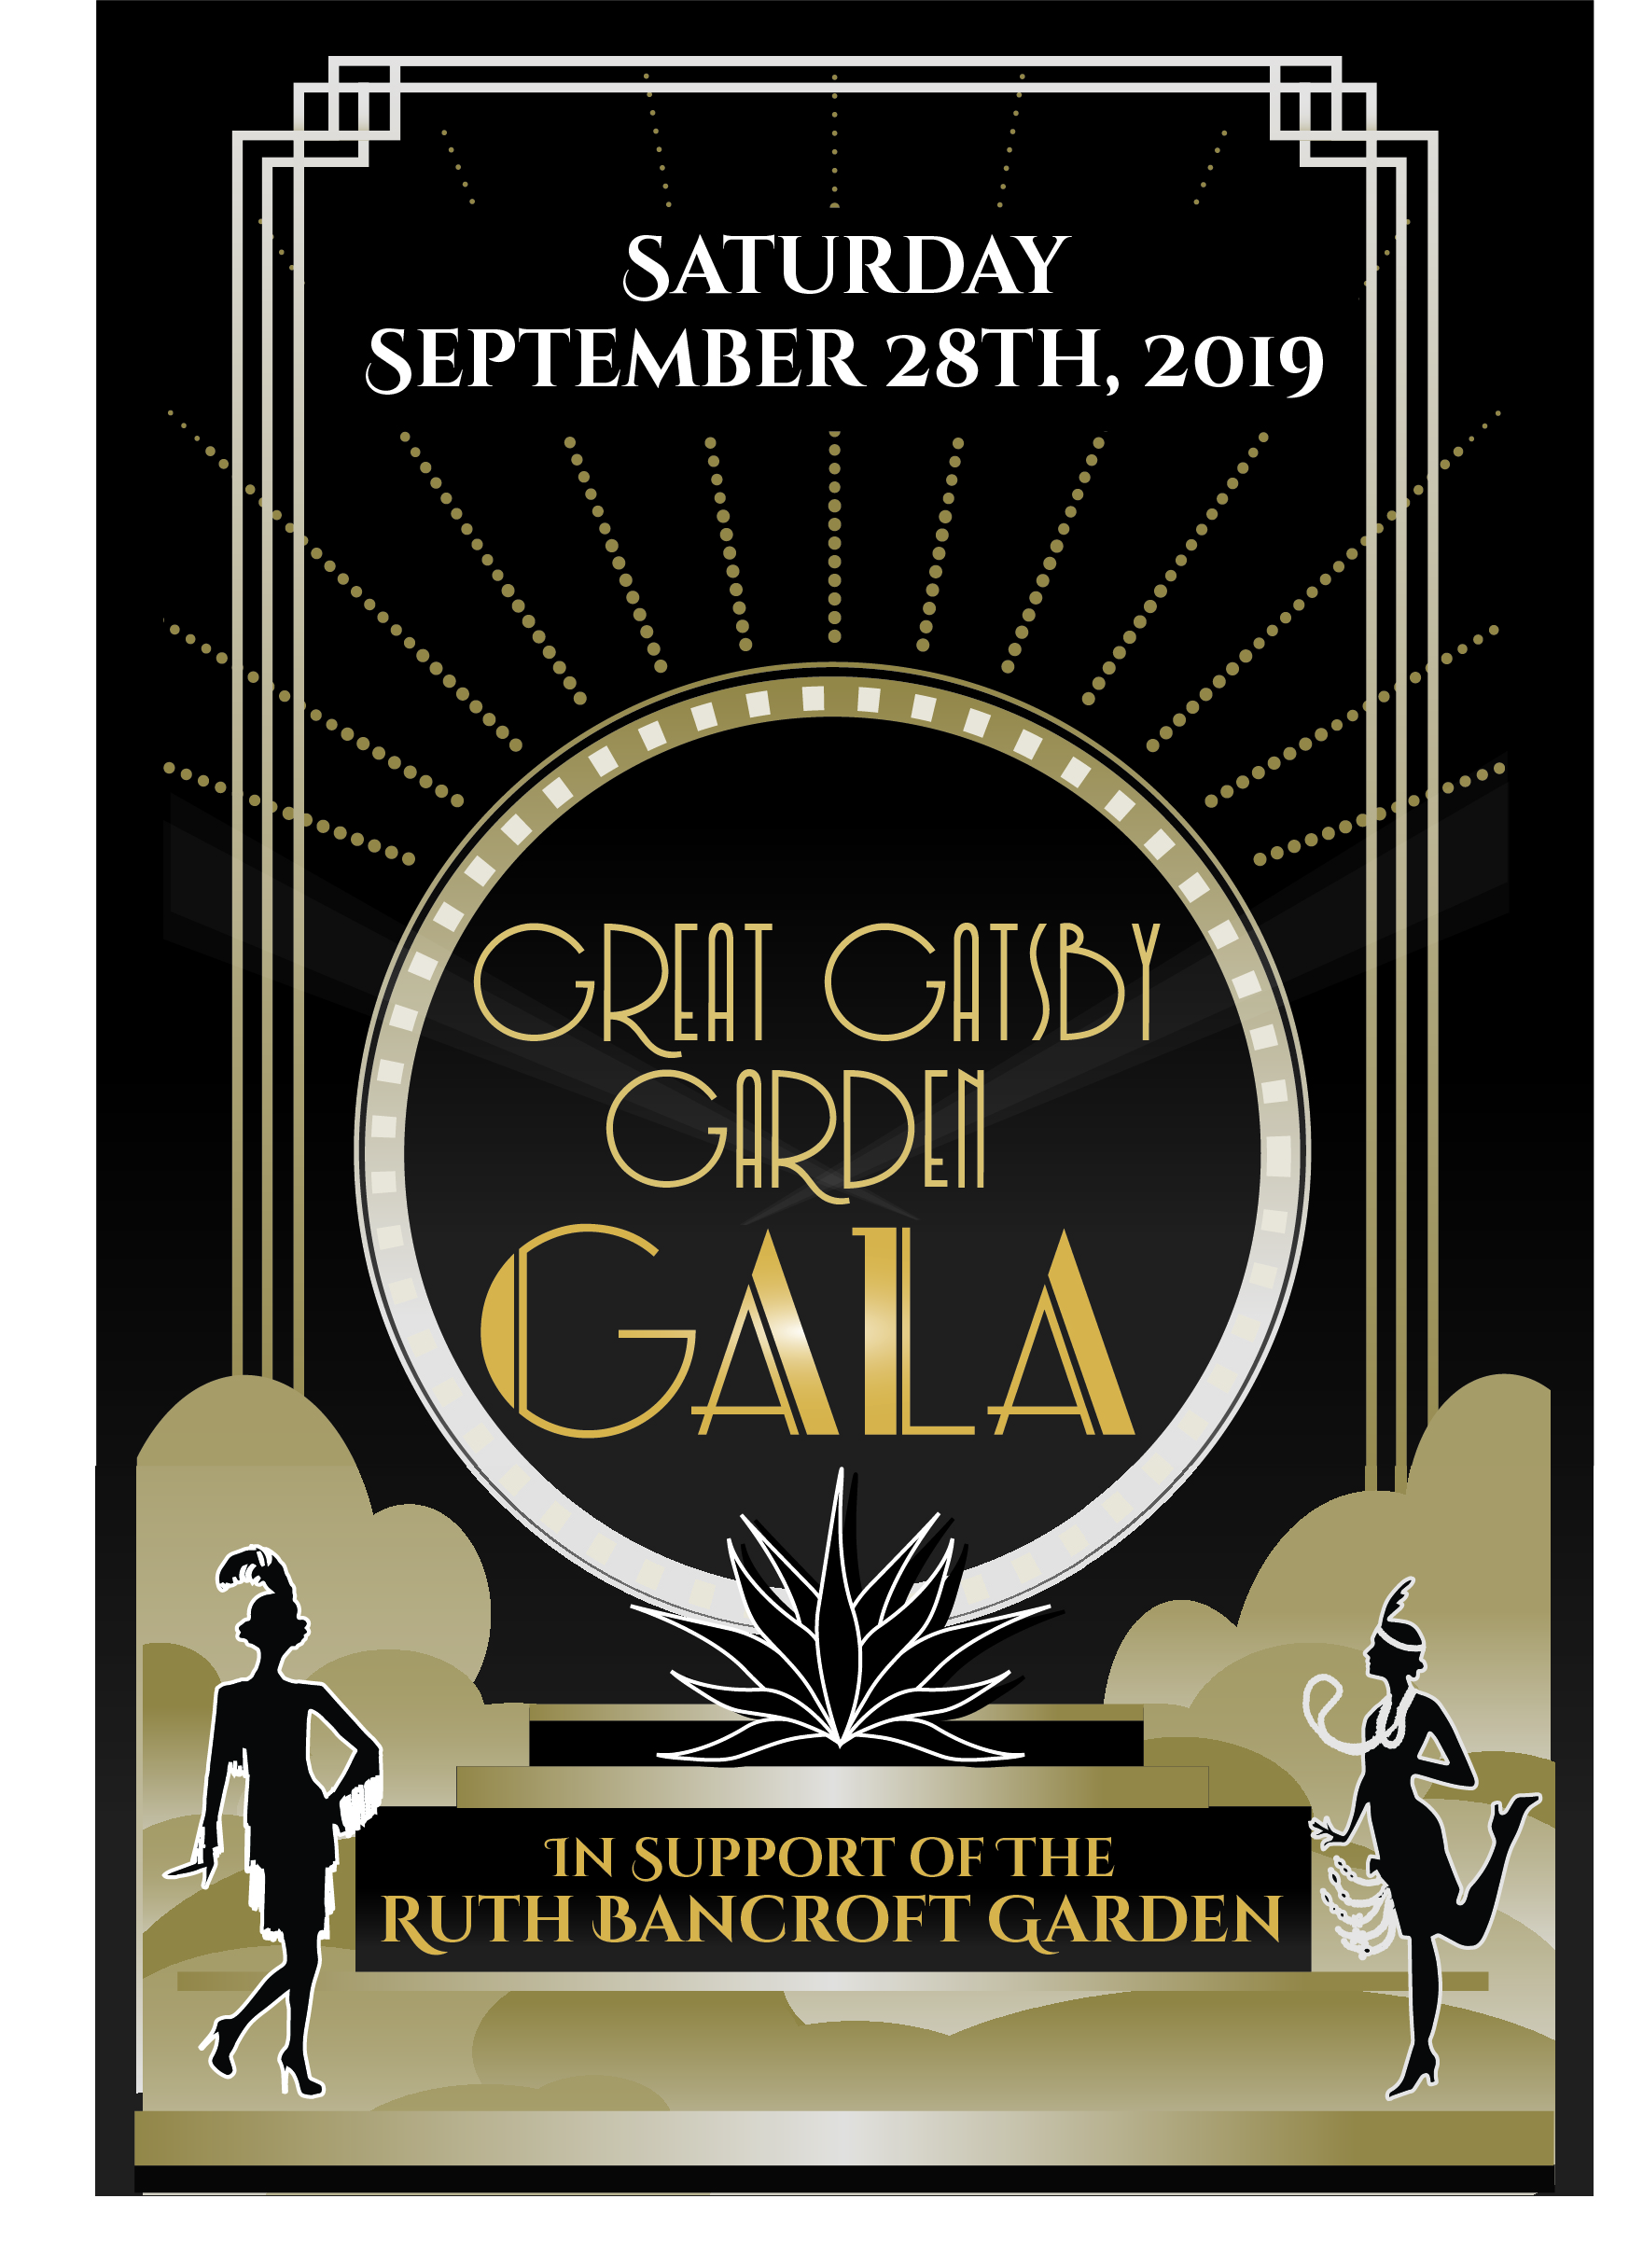 Great Gatsby Garden Gala 2019 Save the Date